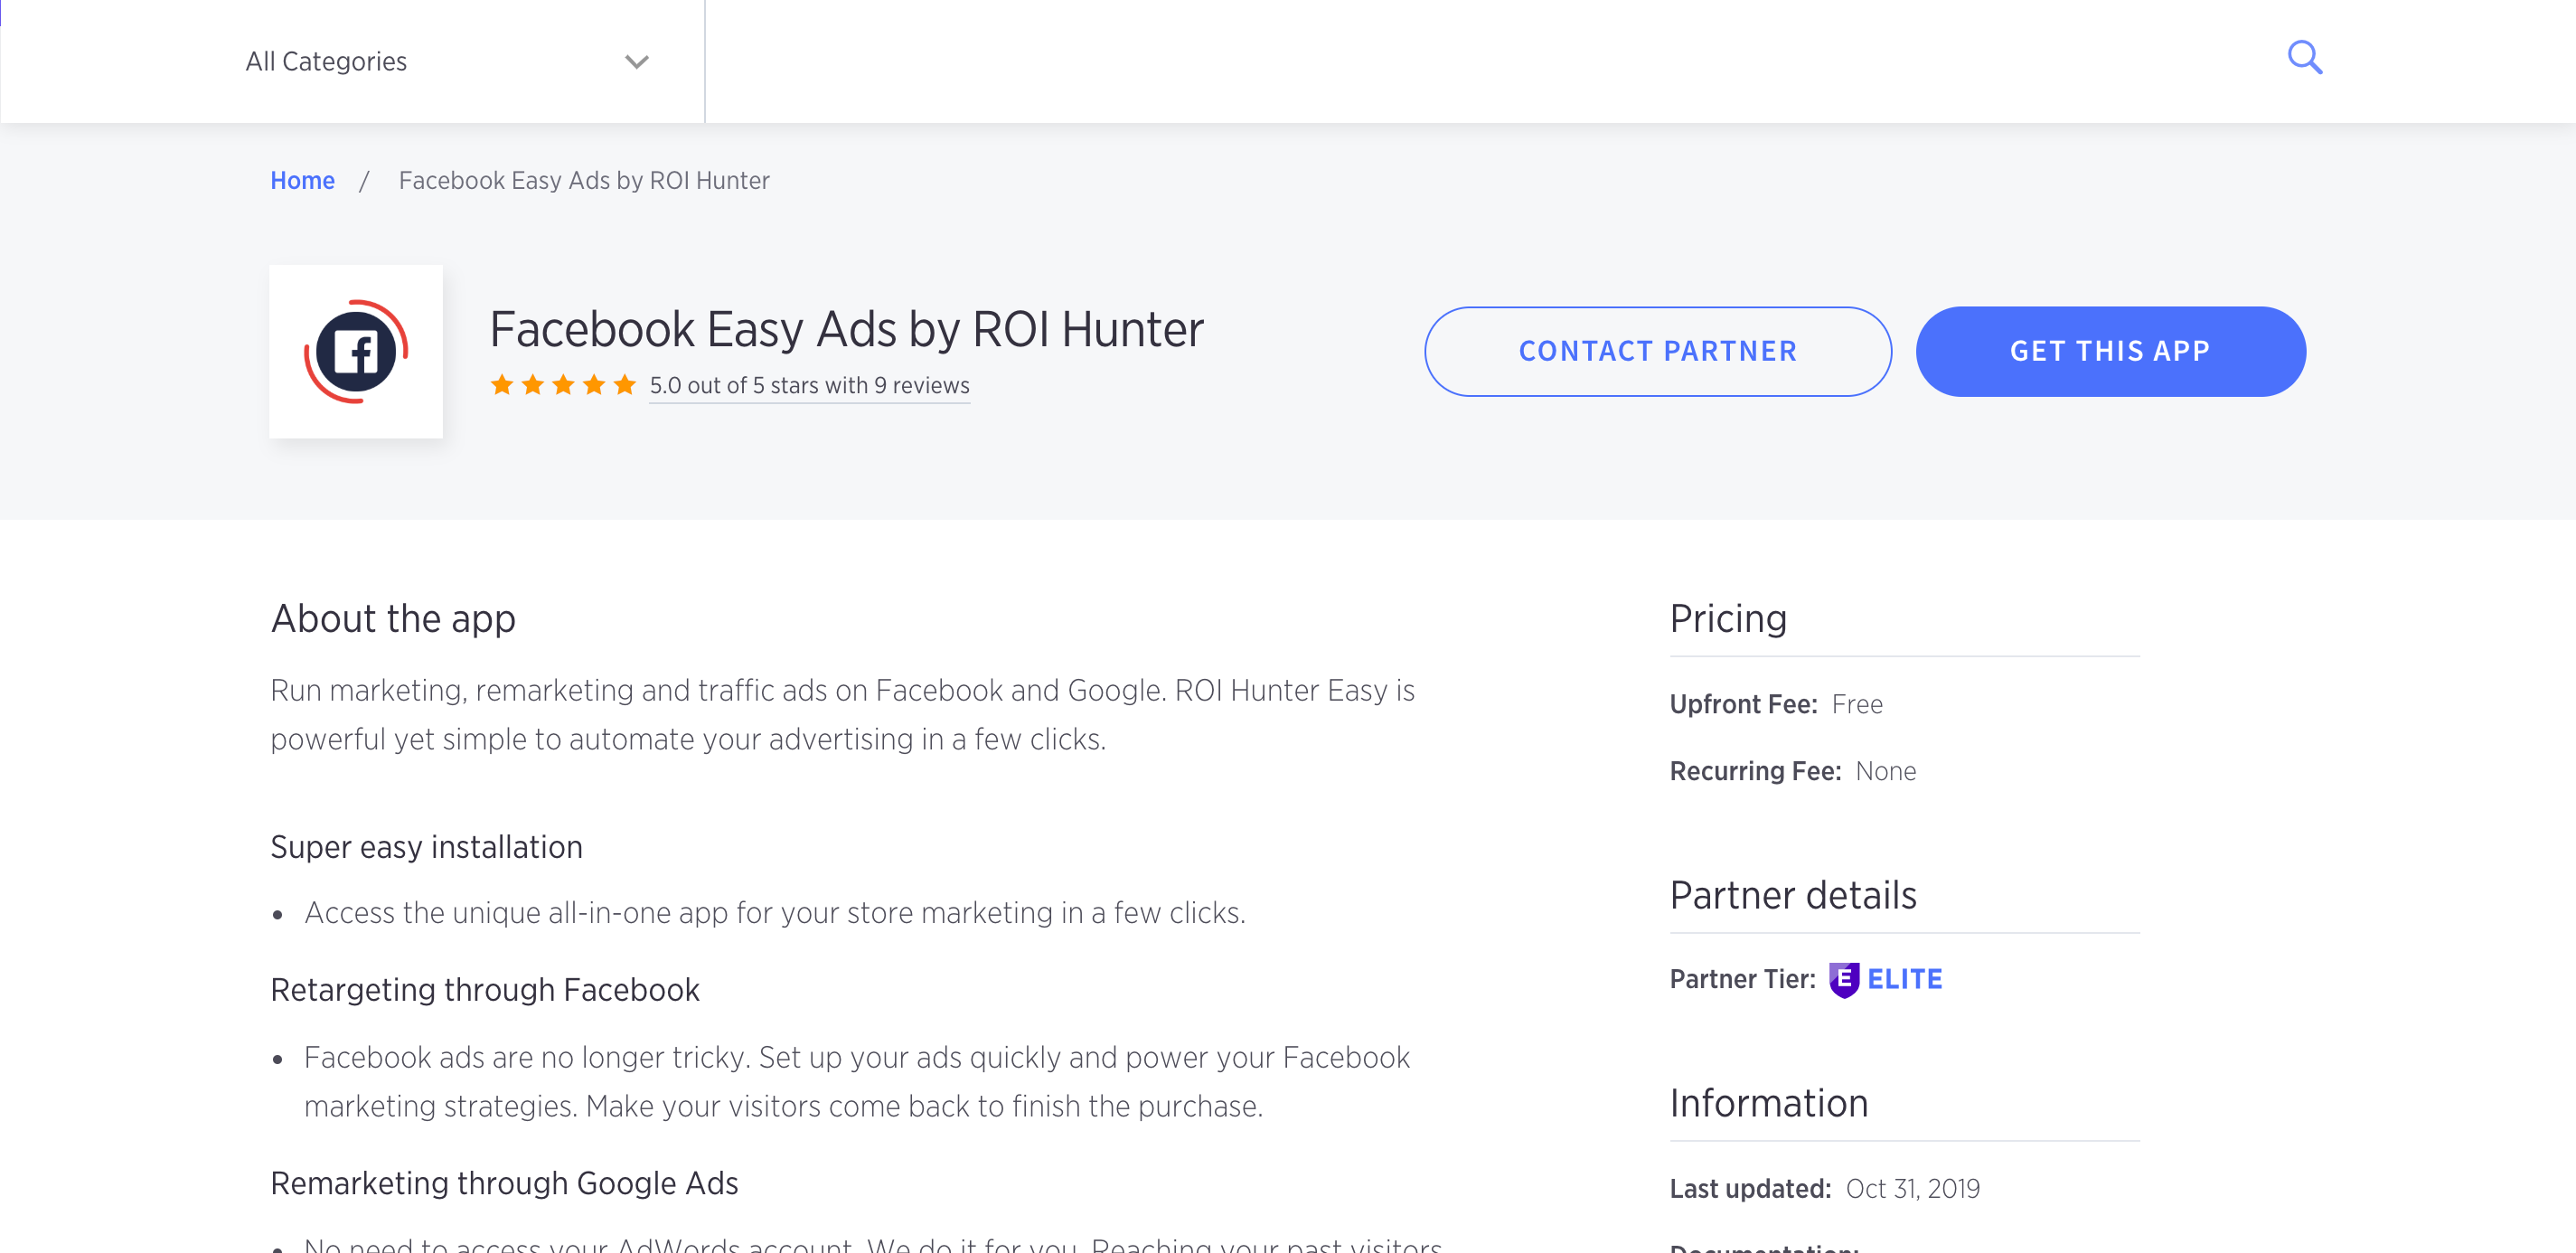 Facebook-Easy-Ads-by-ROI-Hunter-1